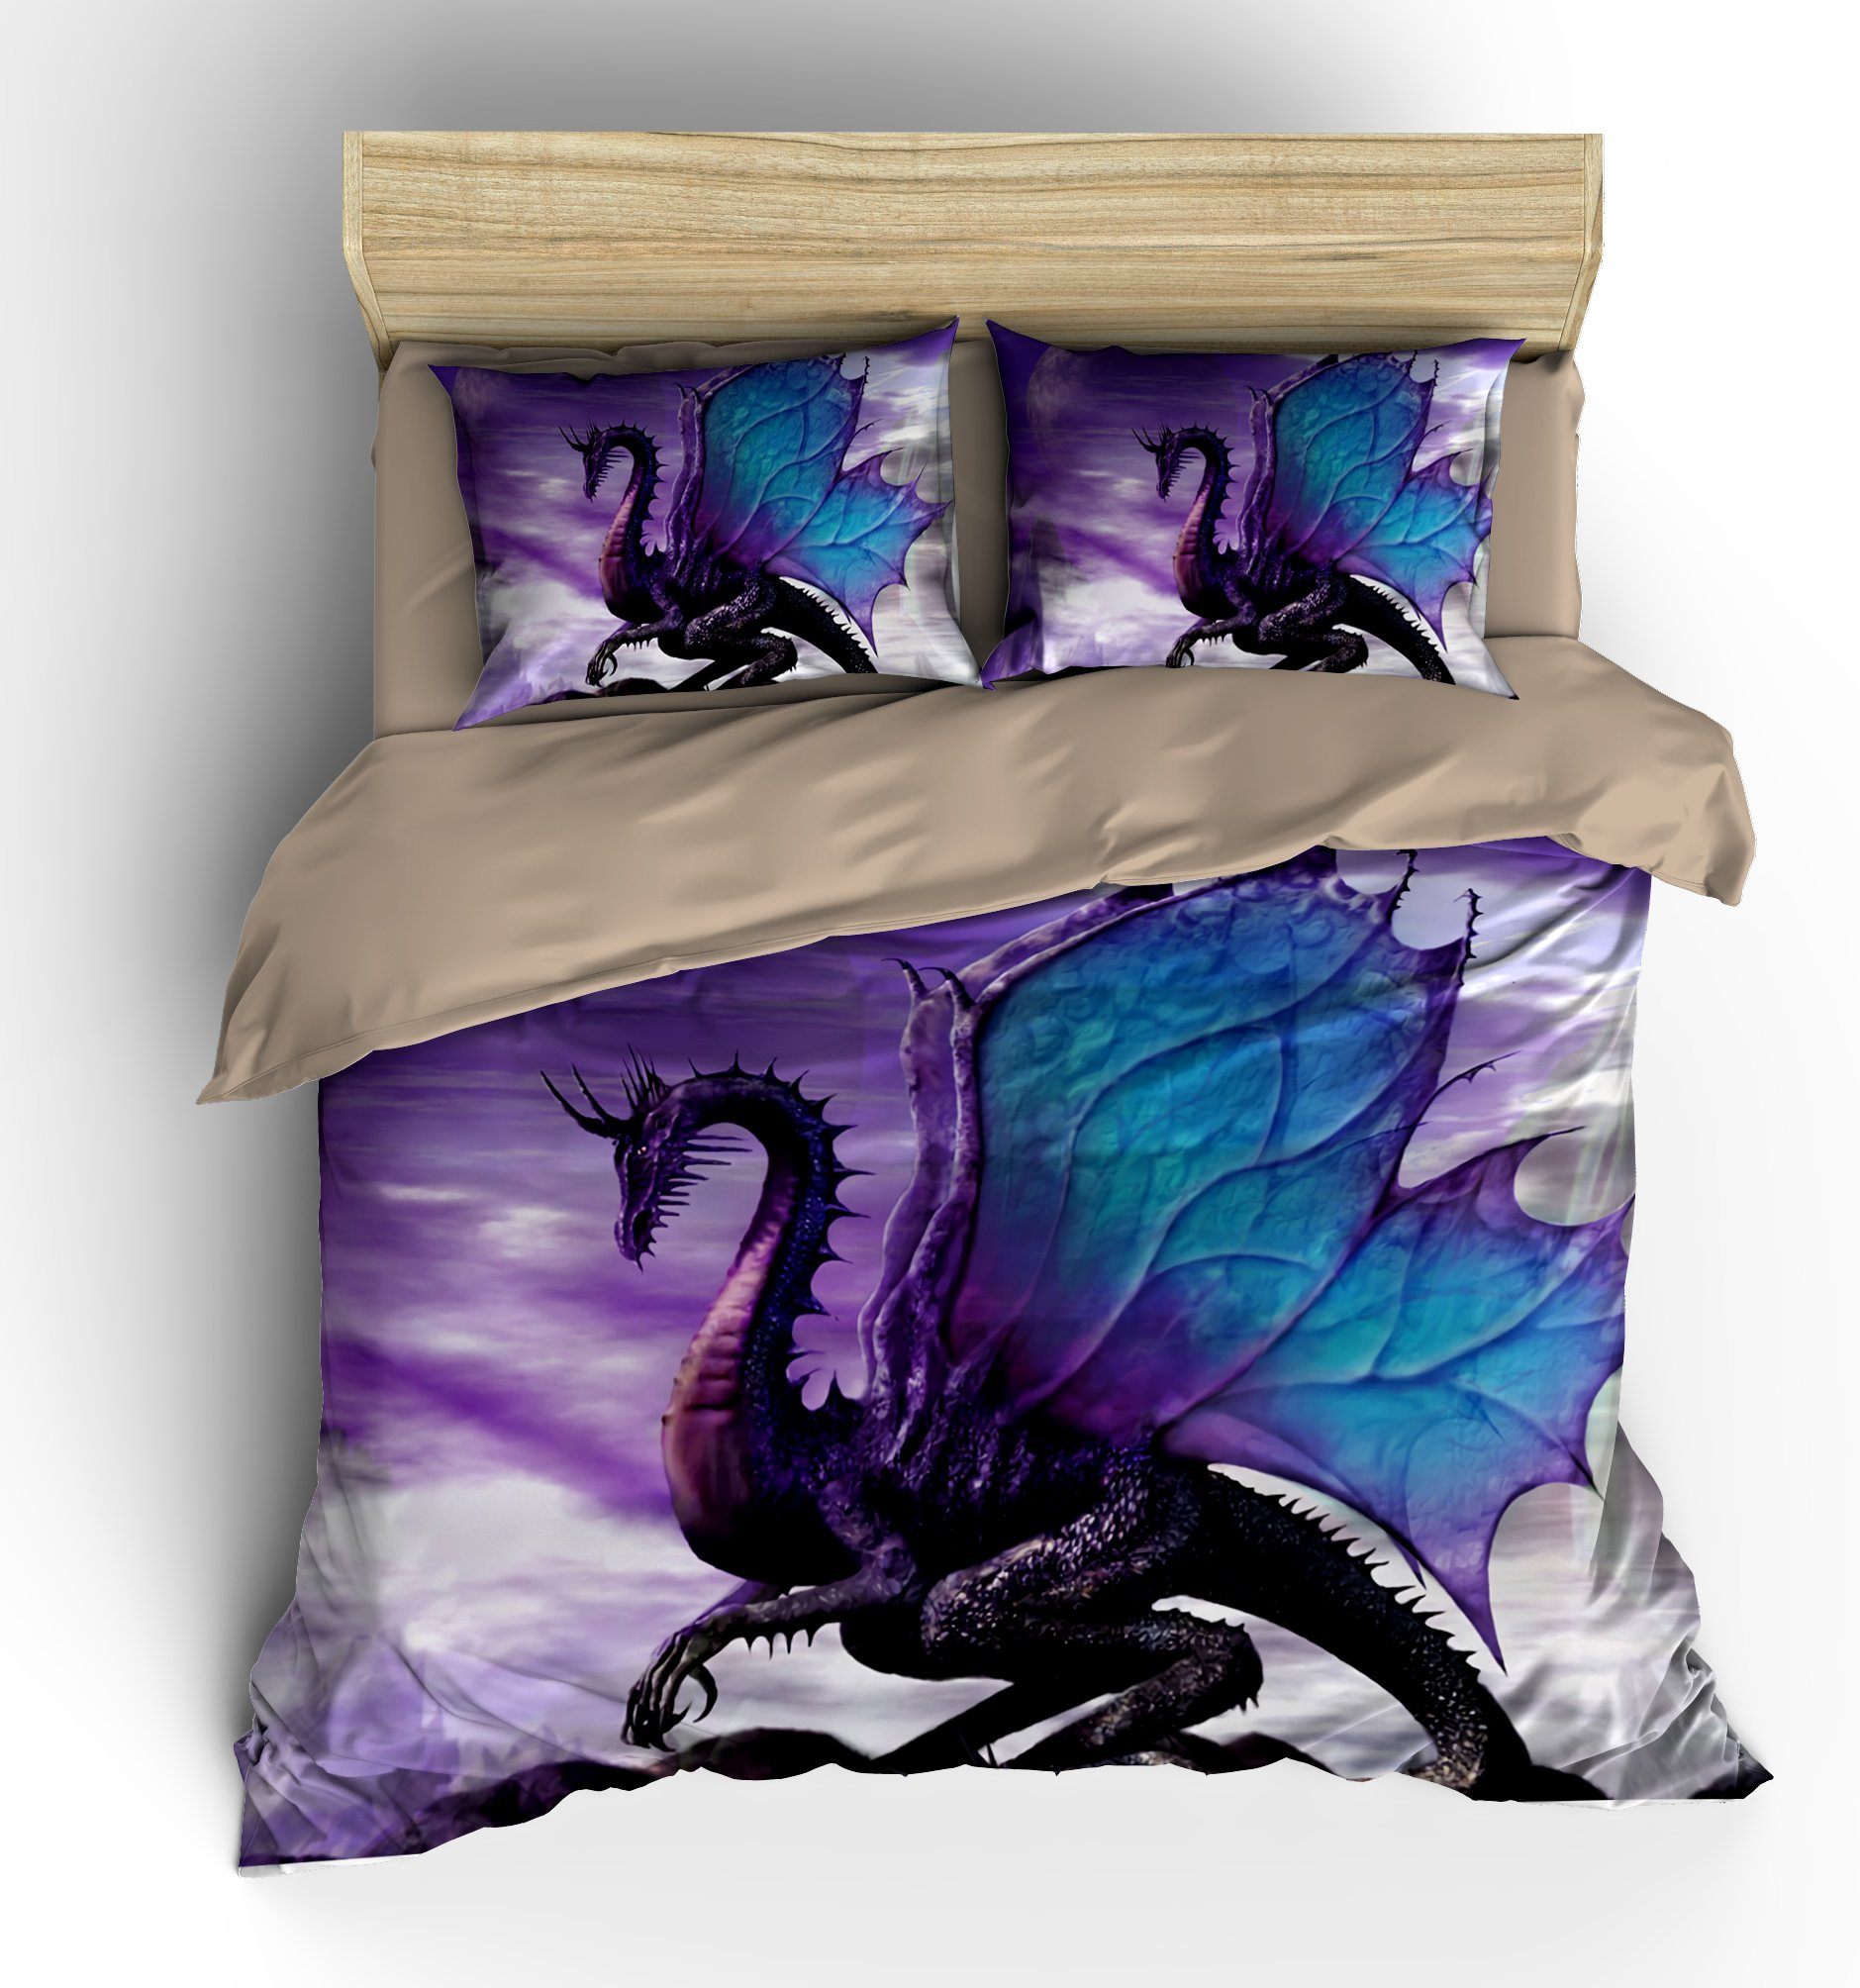 FAITOVE Fly Dragon Microfiber 3pc 104''x90'' Bedding Quilt Duvet Cover Sets 2 Pillow Cases King Size